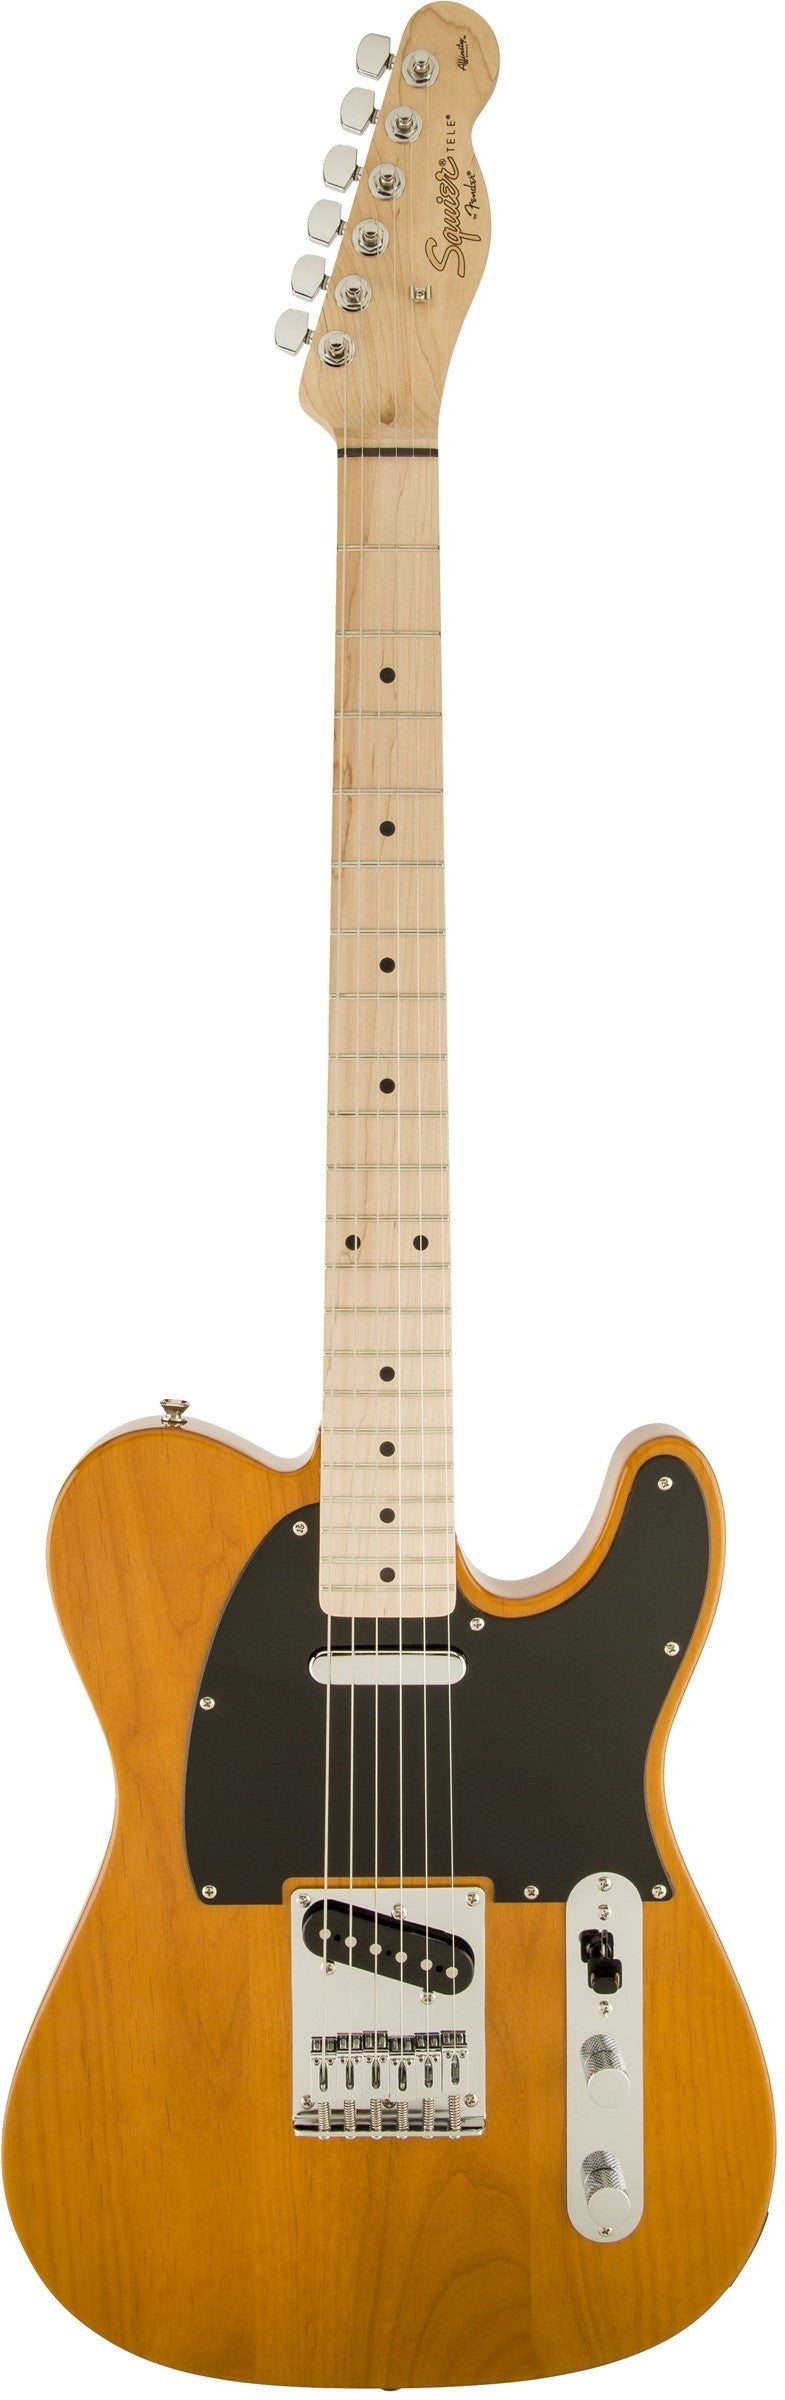 Squier Affinity Series Telecaster Electric Guitar - Butterscotch Blonde, Maple Fingerboard